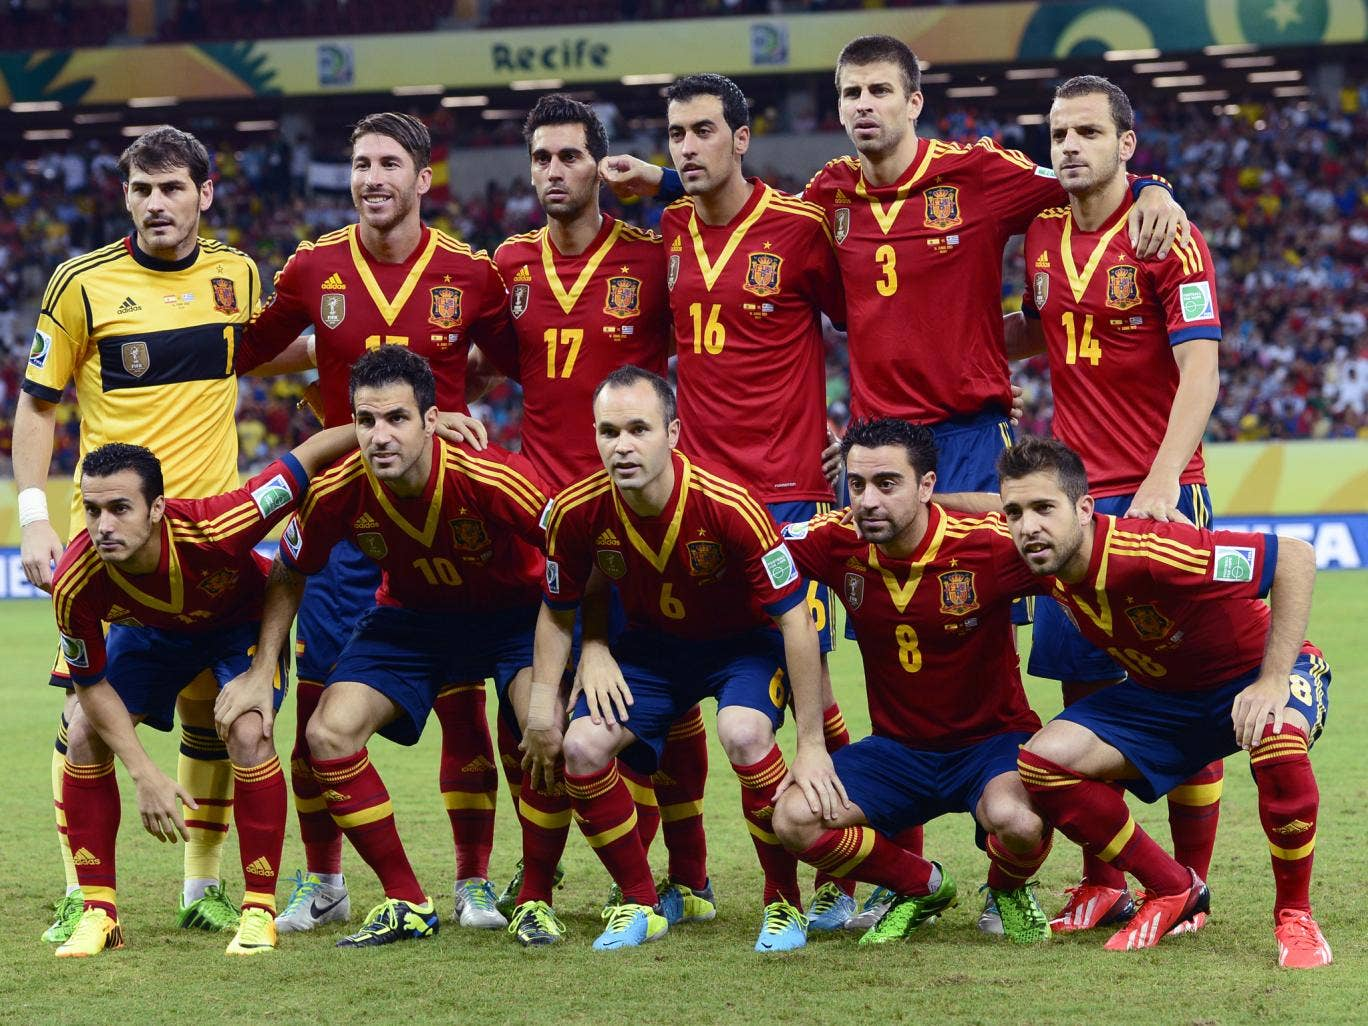 The Spanish Football Federation, issued a statement responding to reports in the Brazilian media that the theft was connected to a team party following a 2-1 victory over Uruguay in Recife